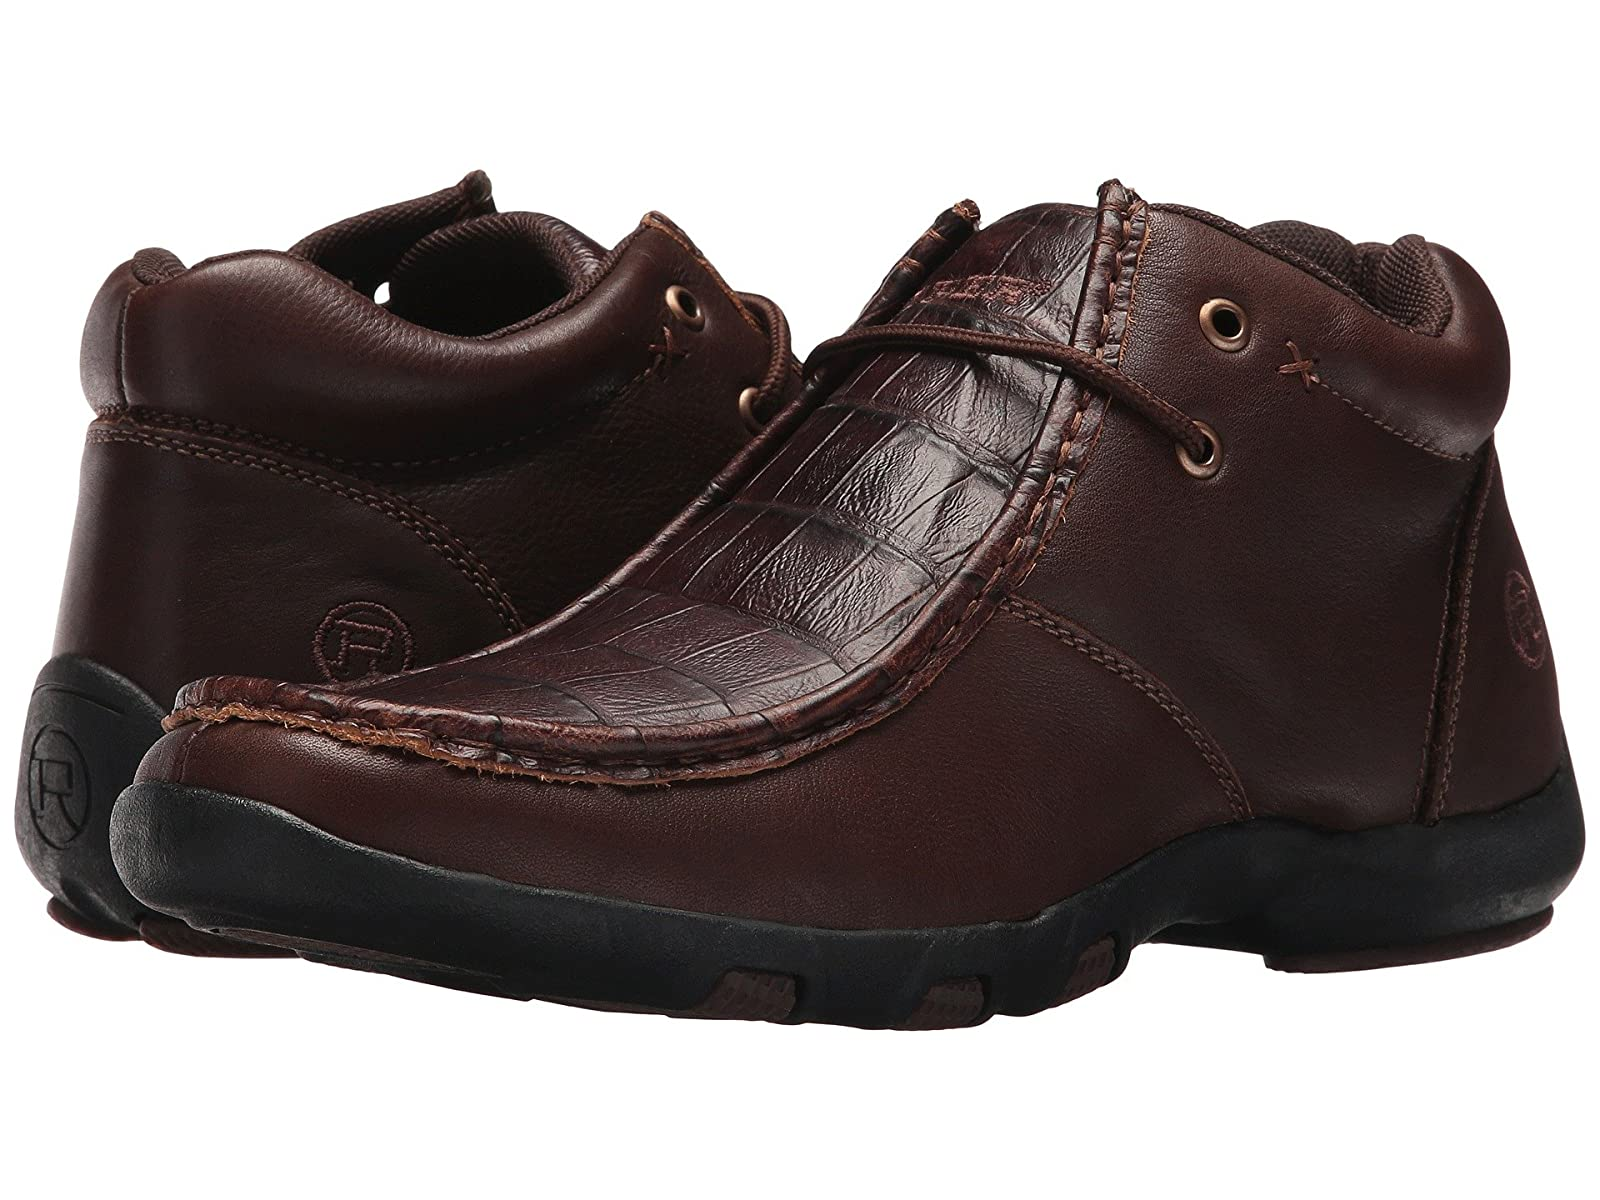 Roper BrodyCheap and distinctive eye-catching shoes